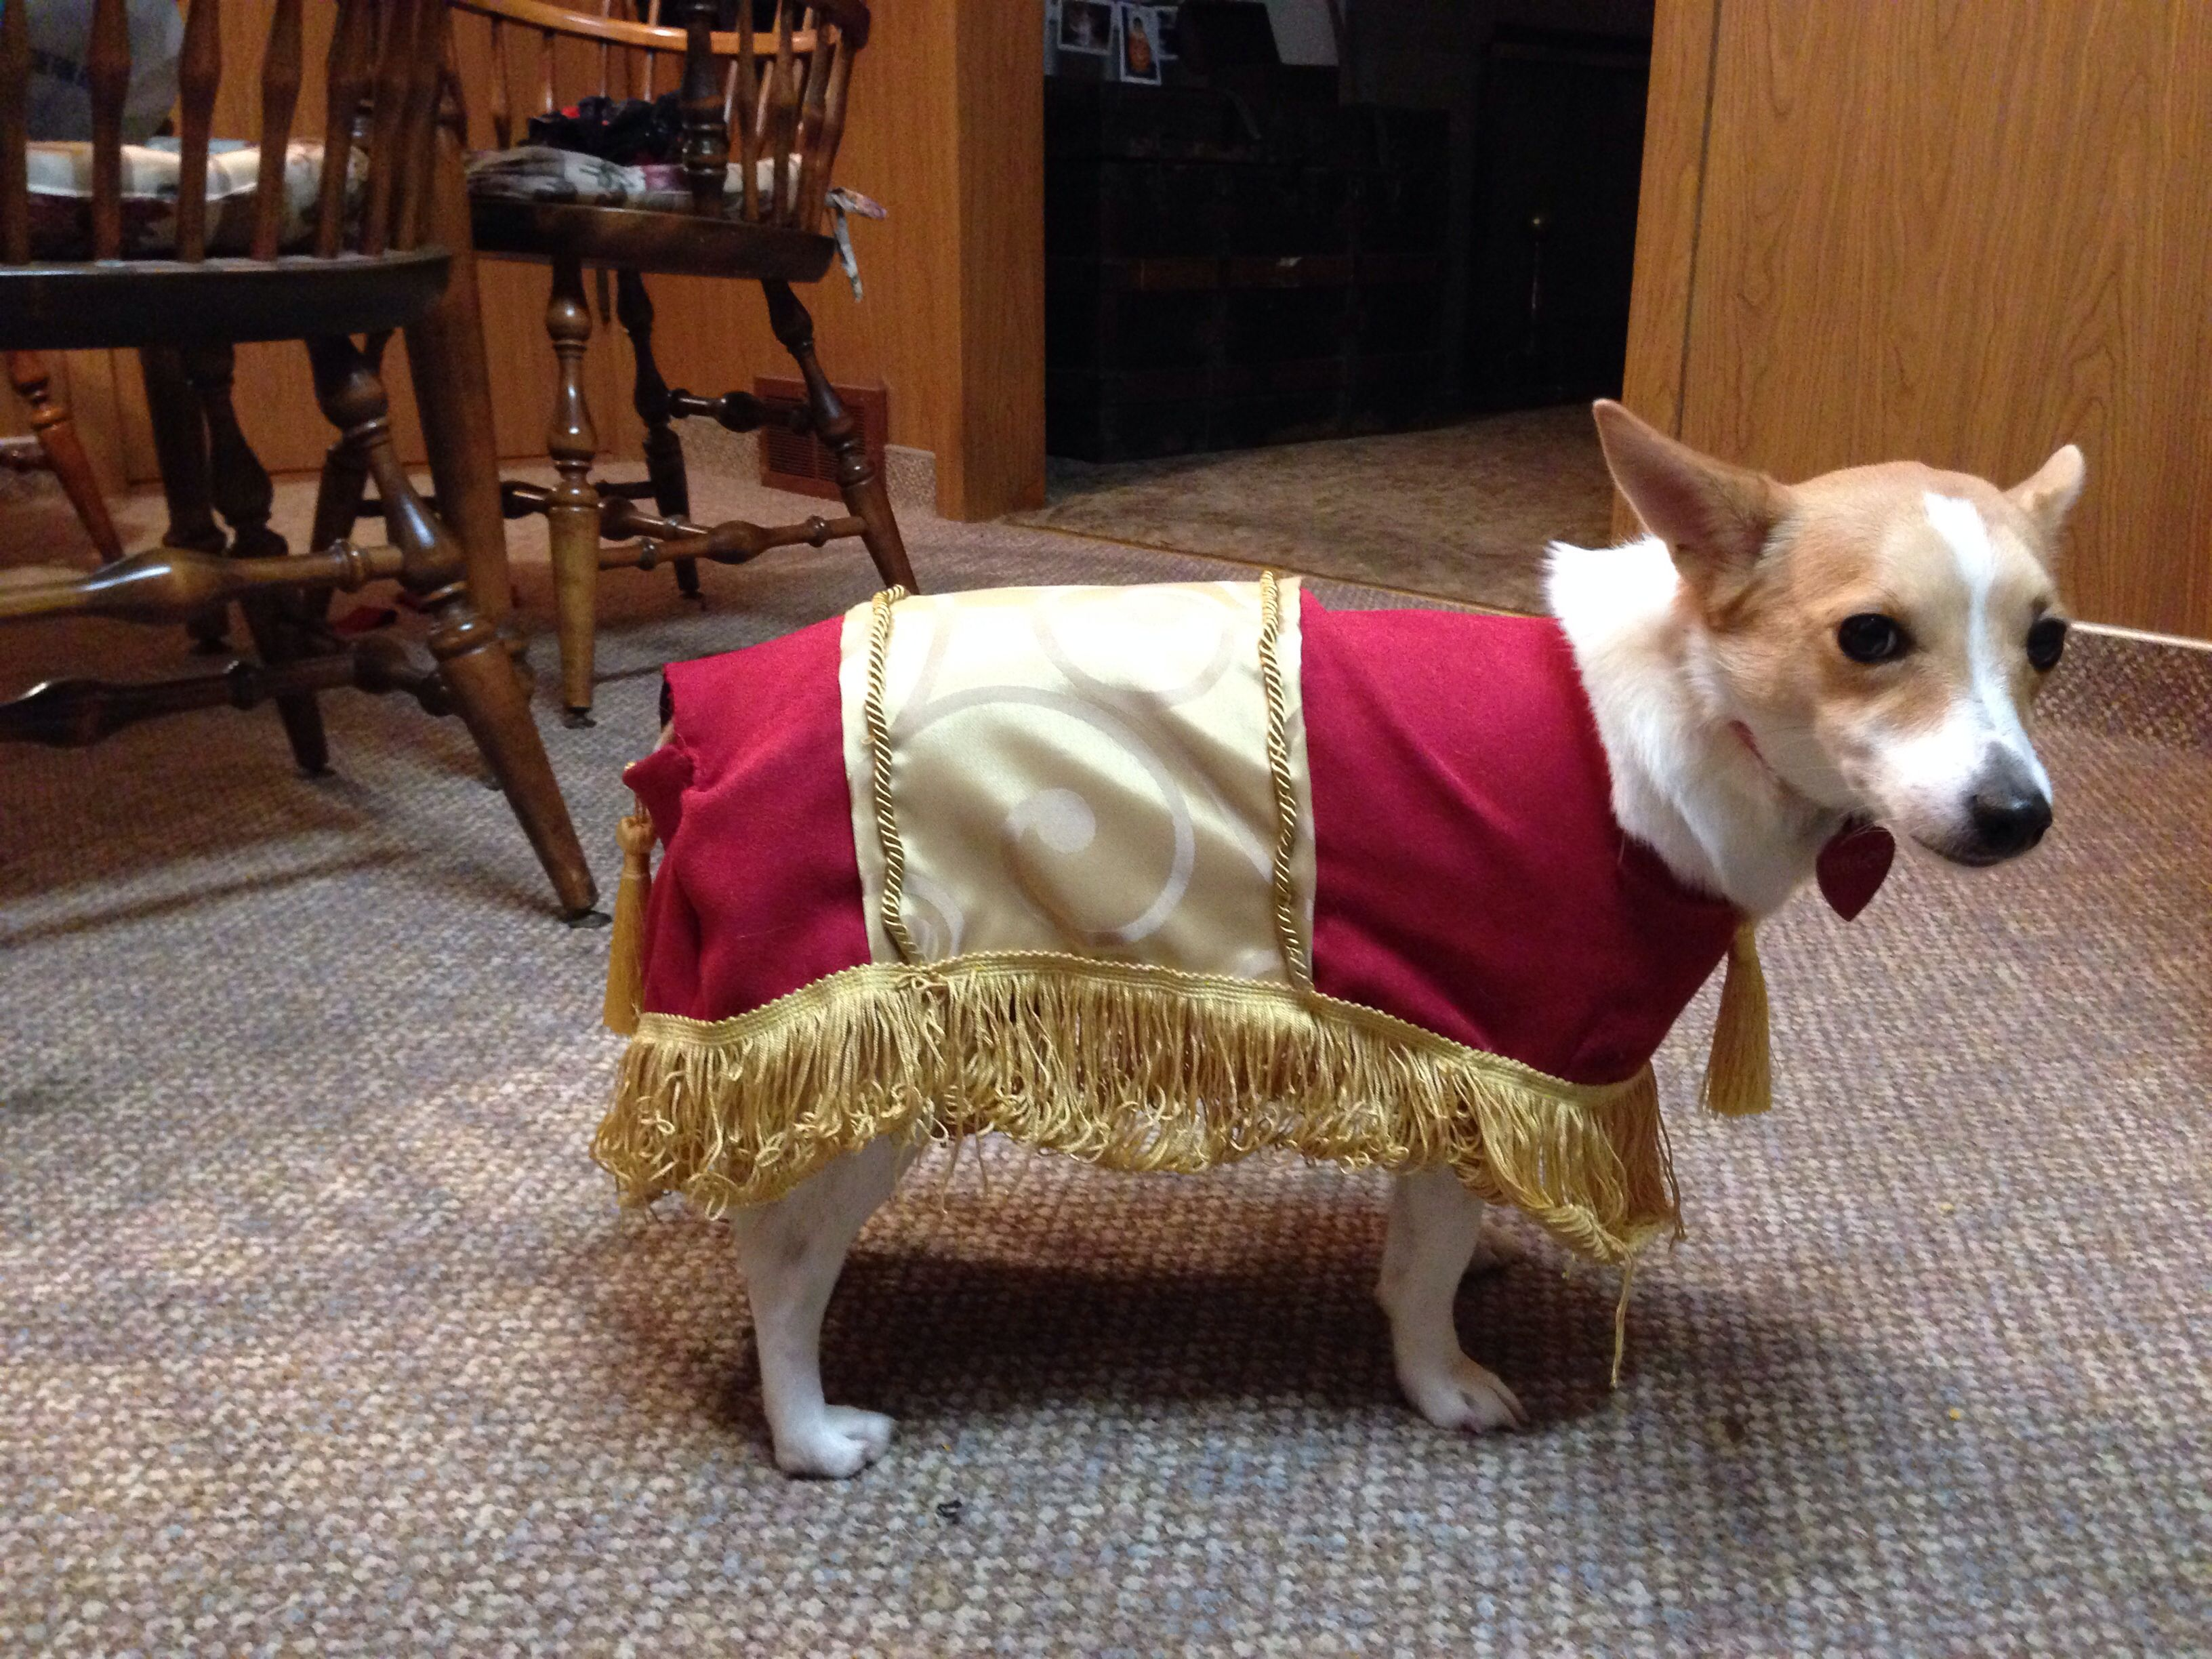 The Foot Stool From Beauty And The Beast Costume For A Dog